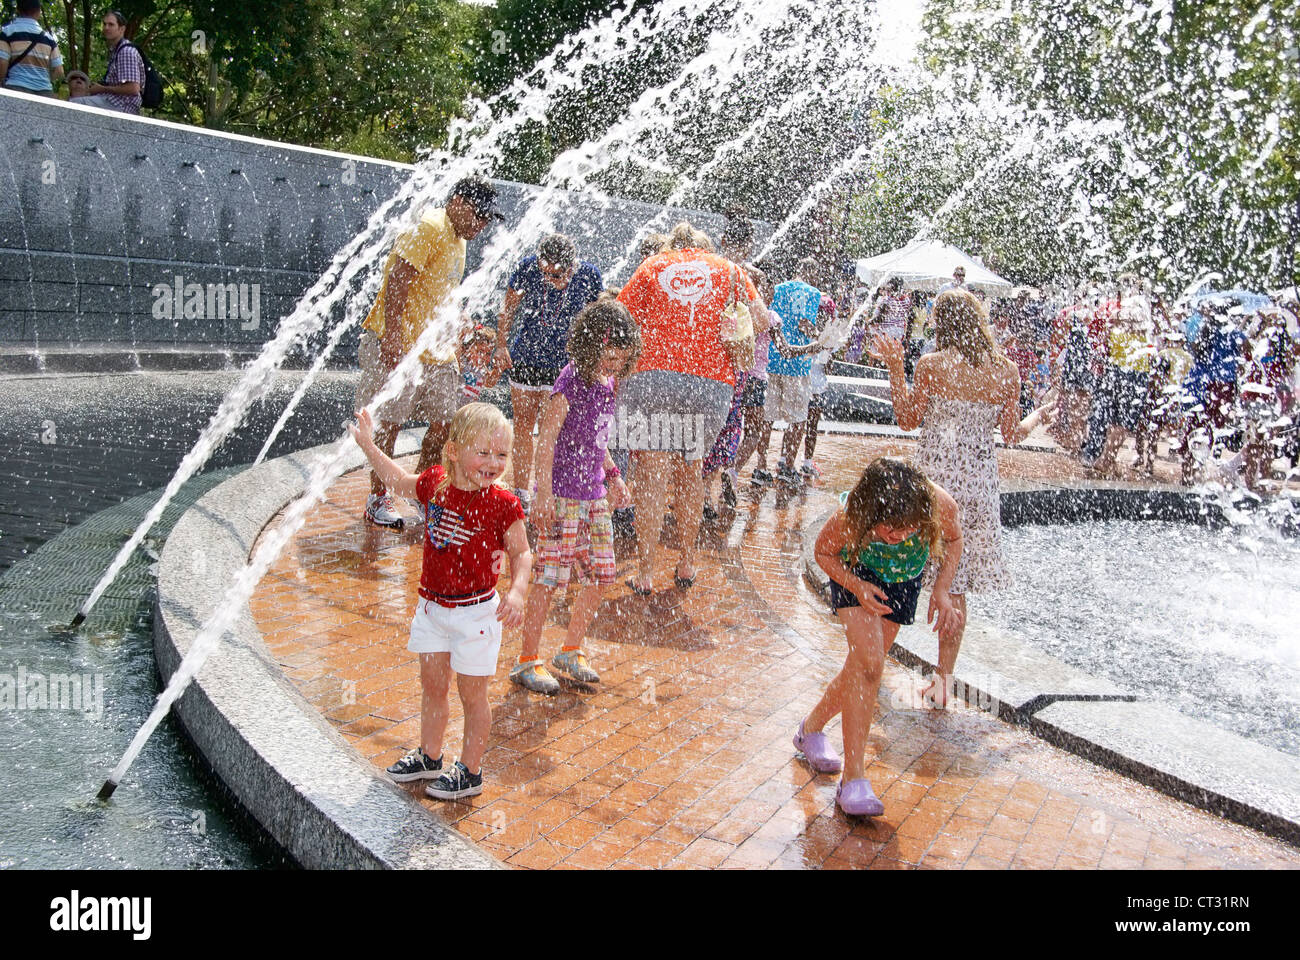 Children and adults finding relief in the Center City Park fountain, Greensboro NC, during hot weather 4th of July - Stock Image